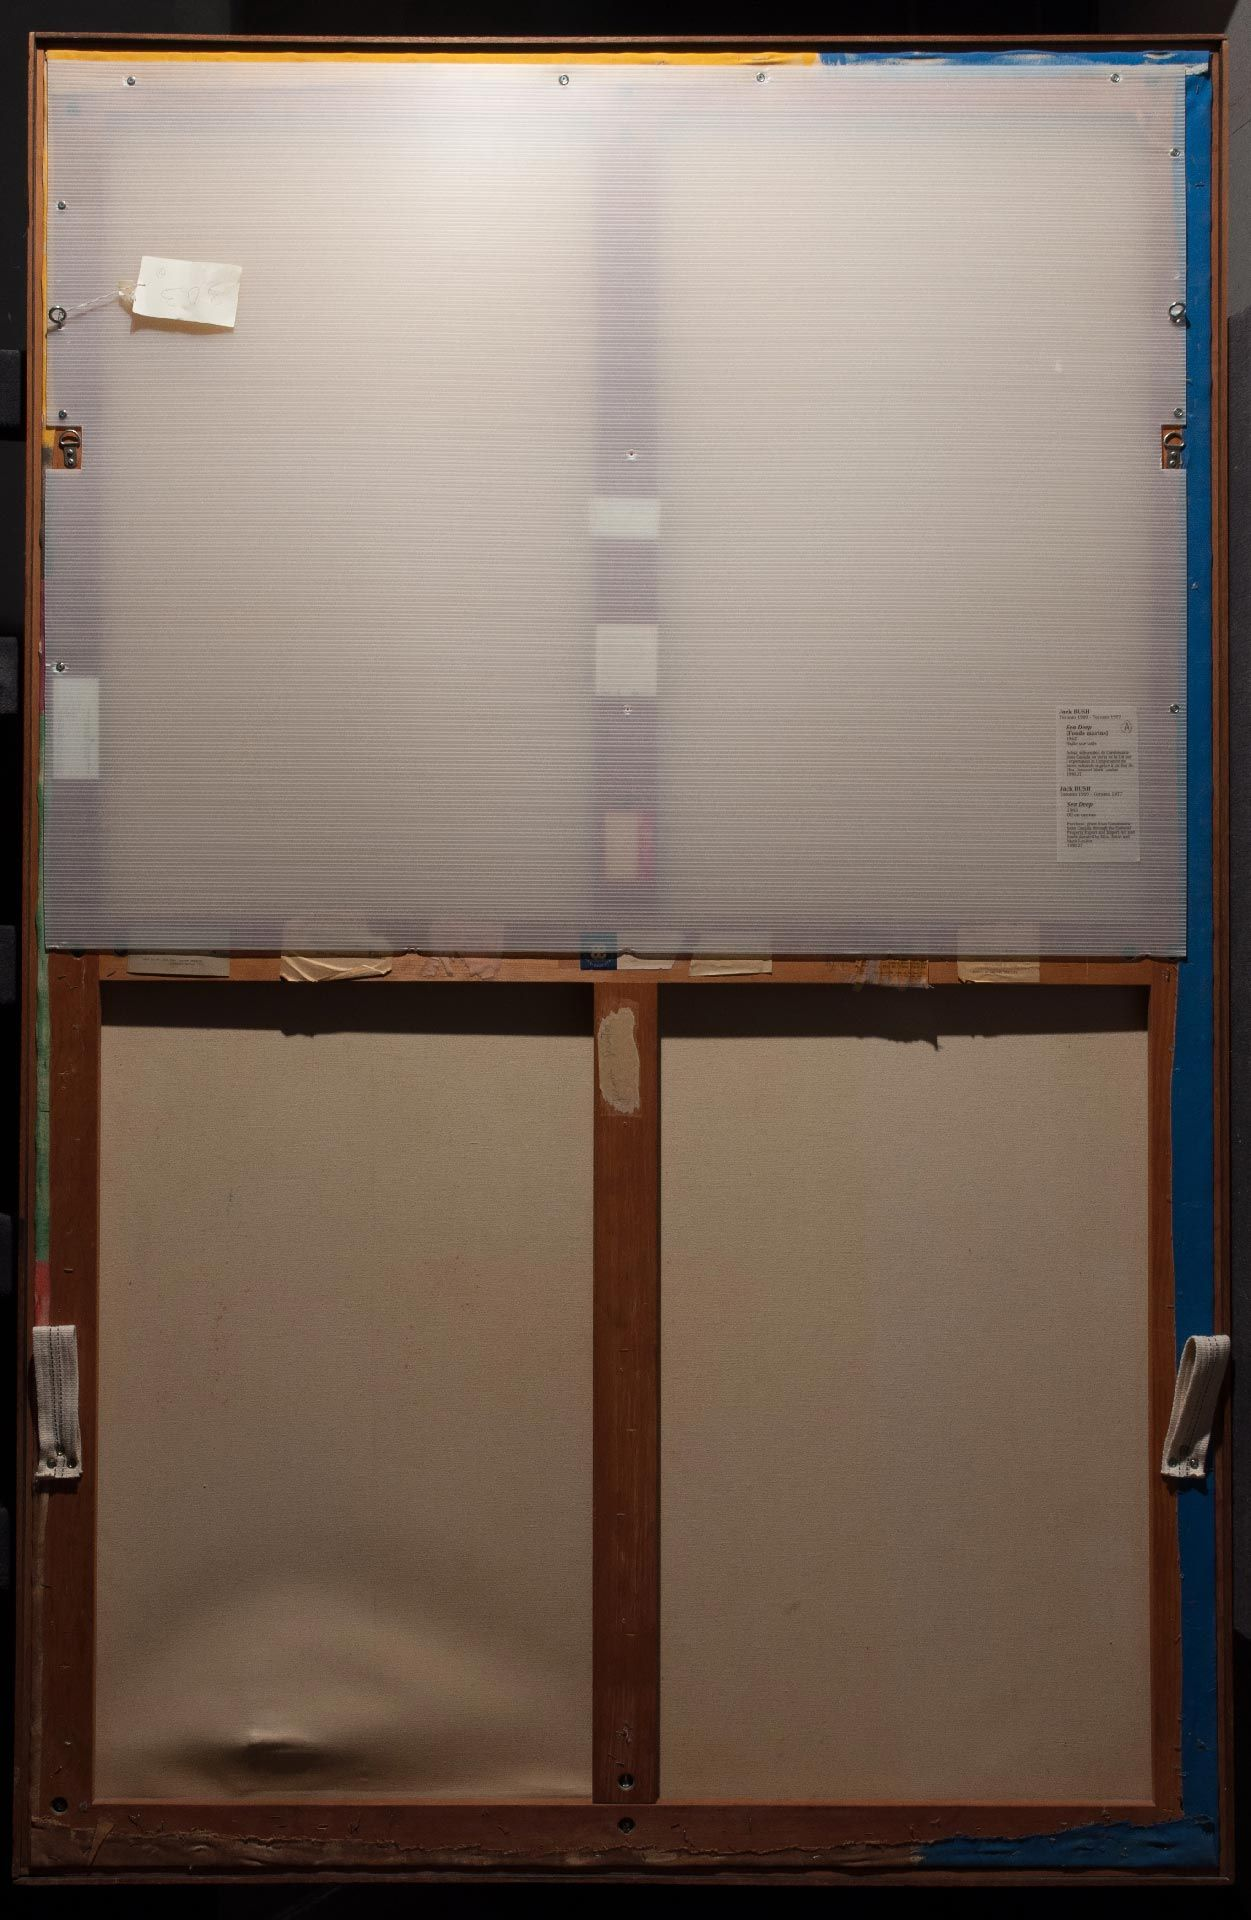 The extent of canvas deformation in the lower left corner is visible in raking light, with the lower half of the backing board removed. The canvas fibres had been stretched but had not ruptured.